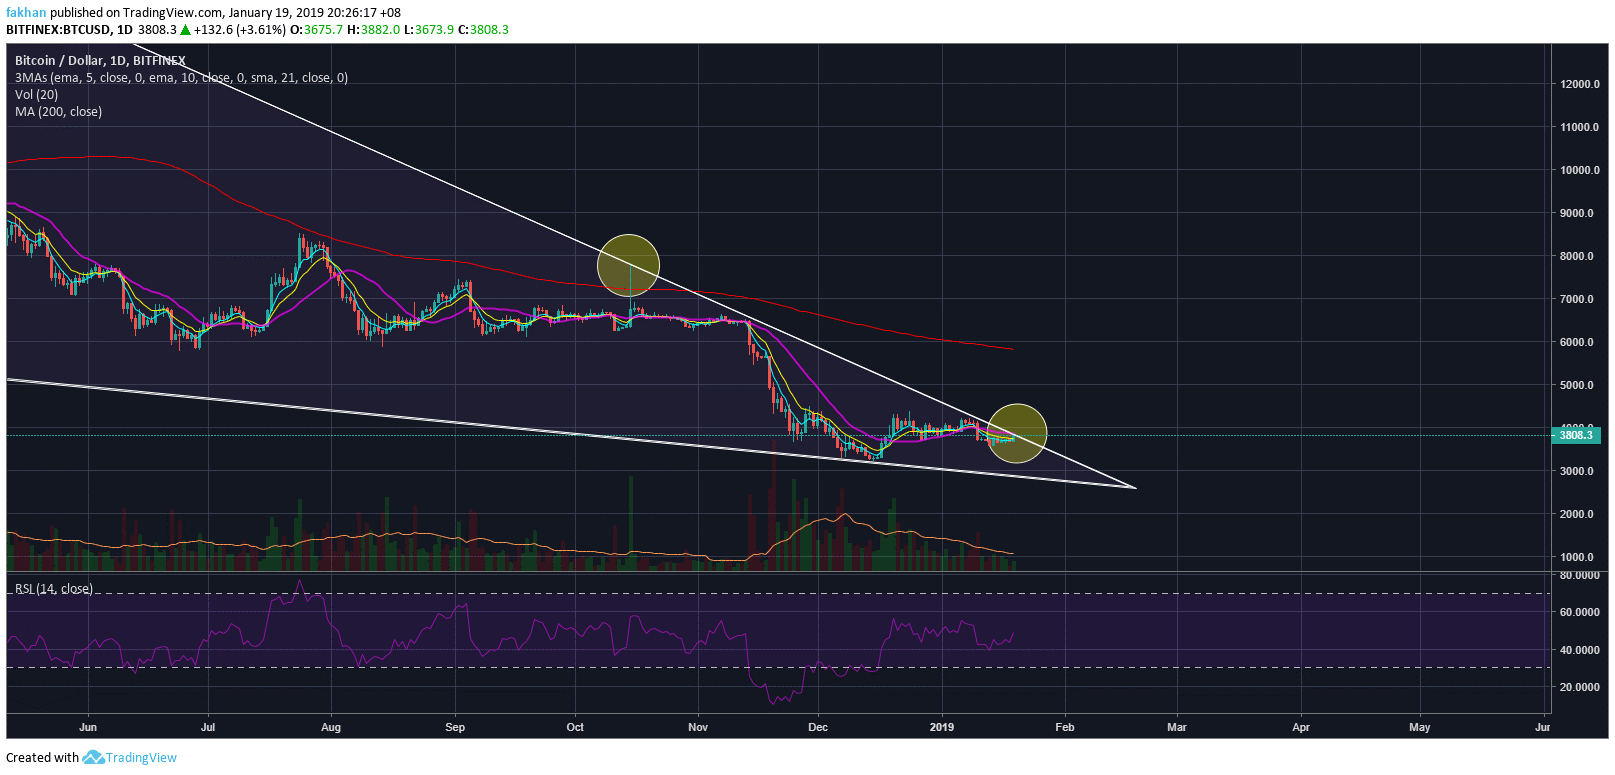 Bitcoin (BTC) Rallies But Faces Strong Rejection At Trend Line Resistance